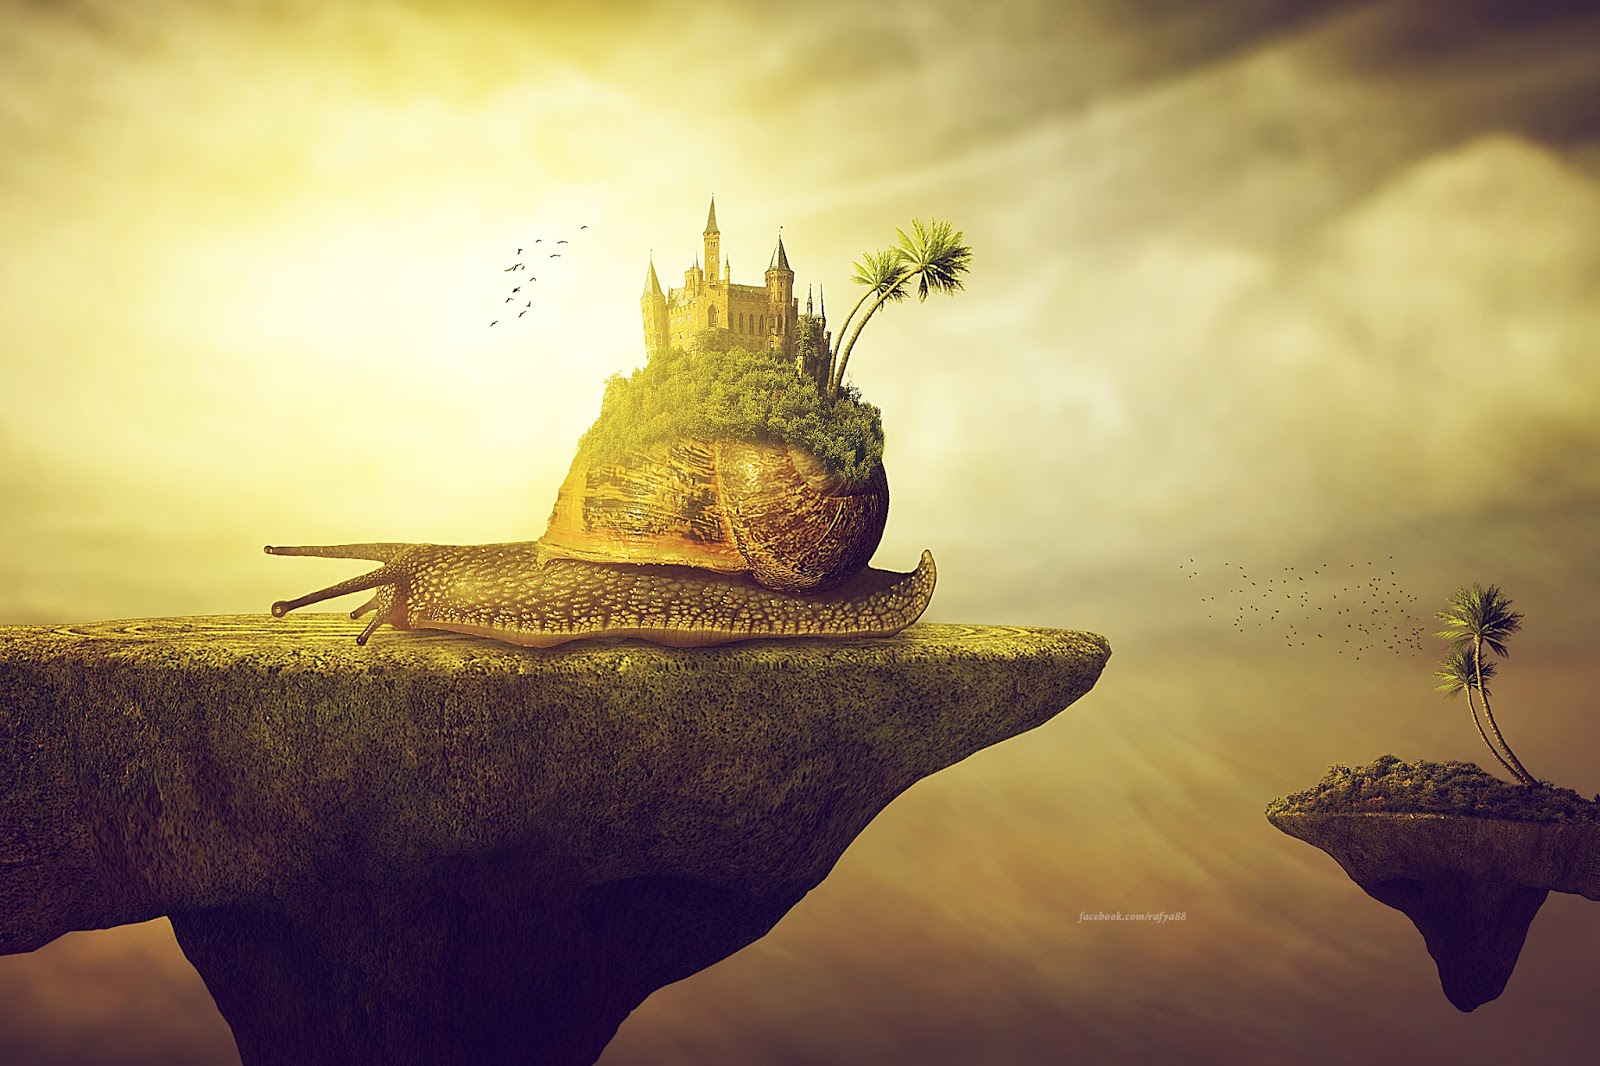 Castle of snail photoshop photo manipulation tutorial rafy a this video will show you how to make fantasy manipulation scene effect in photoshop adding highlights and shadows by using dodge and burn tool baditri Choice Image